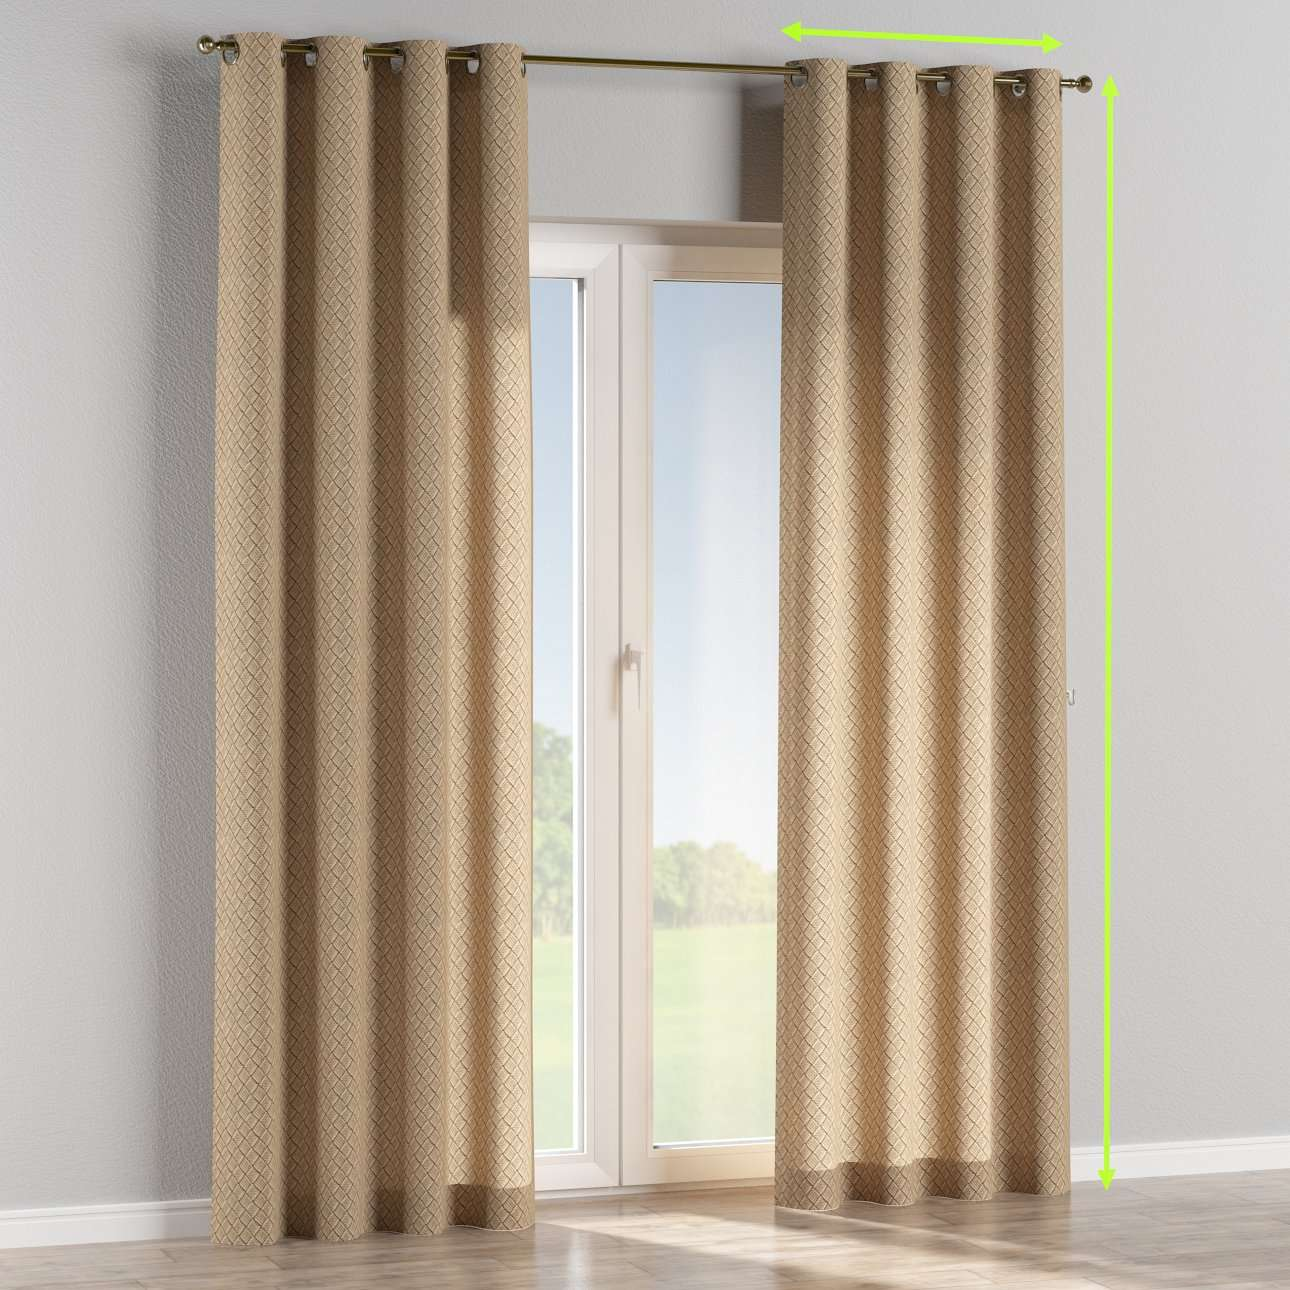 Eyelet curtains in collection Marina, fabric: 140-17